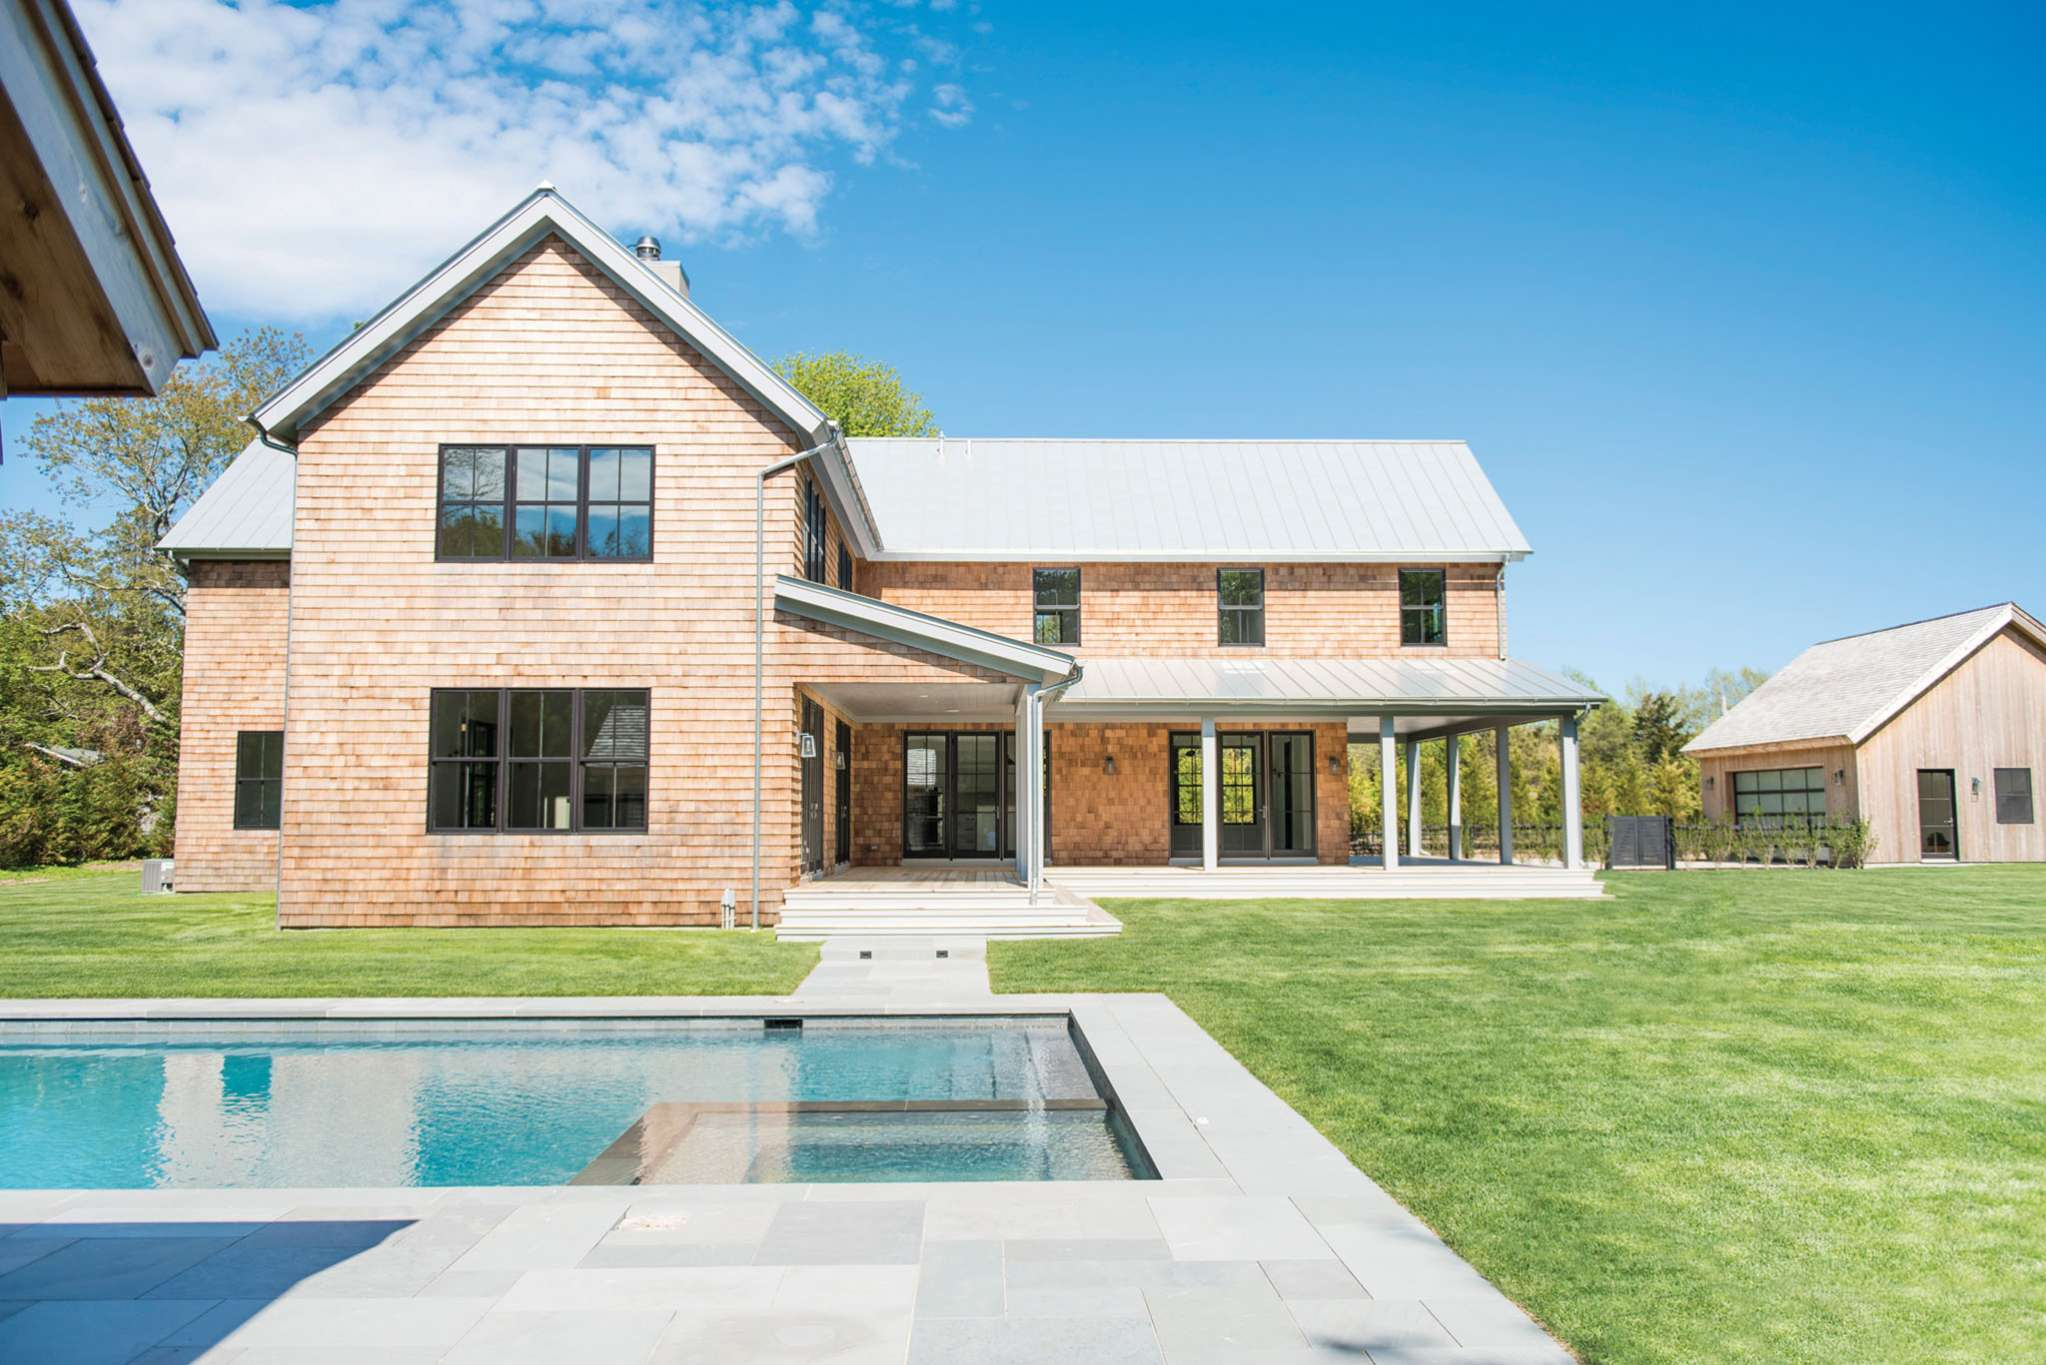 Single Family Home for Sale at The Good Life 93 Three Sisters Lane, Amagansett, New York